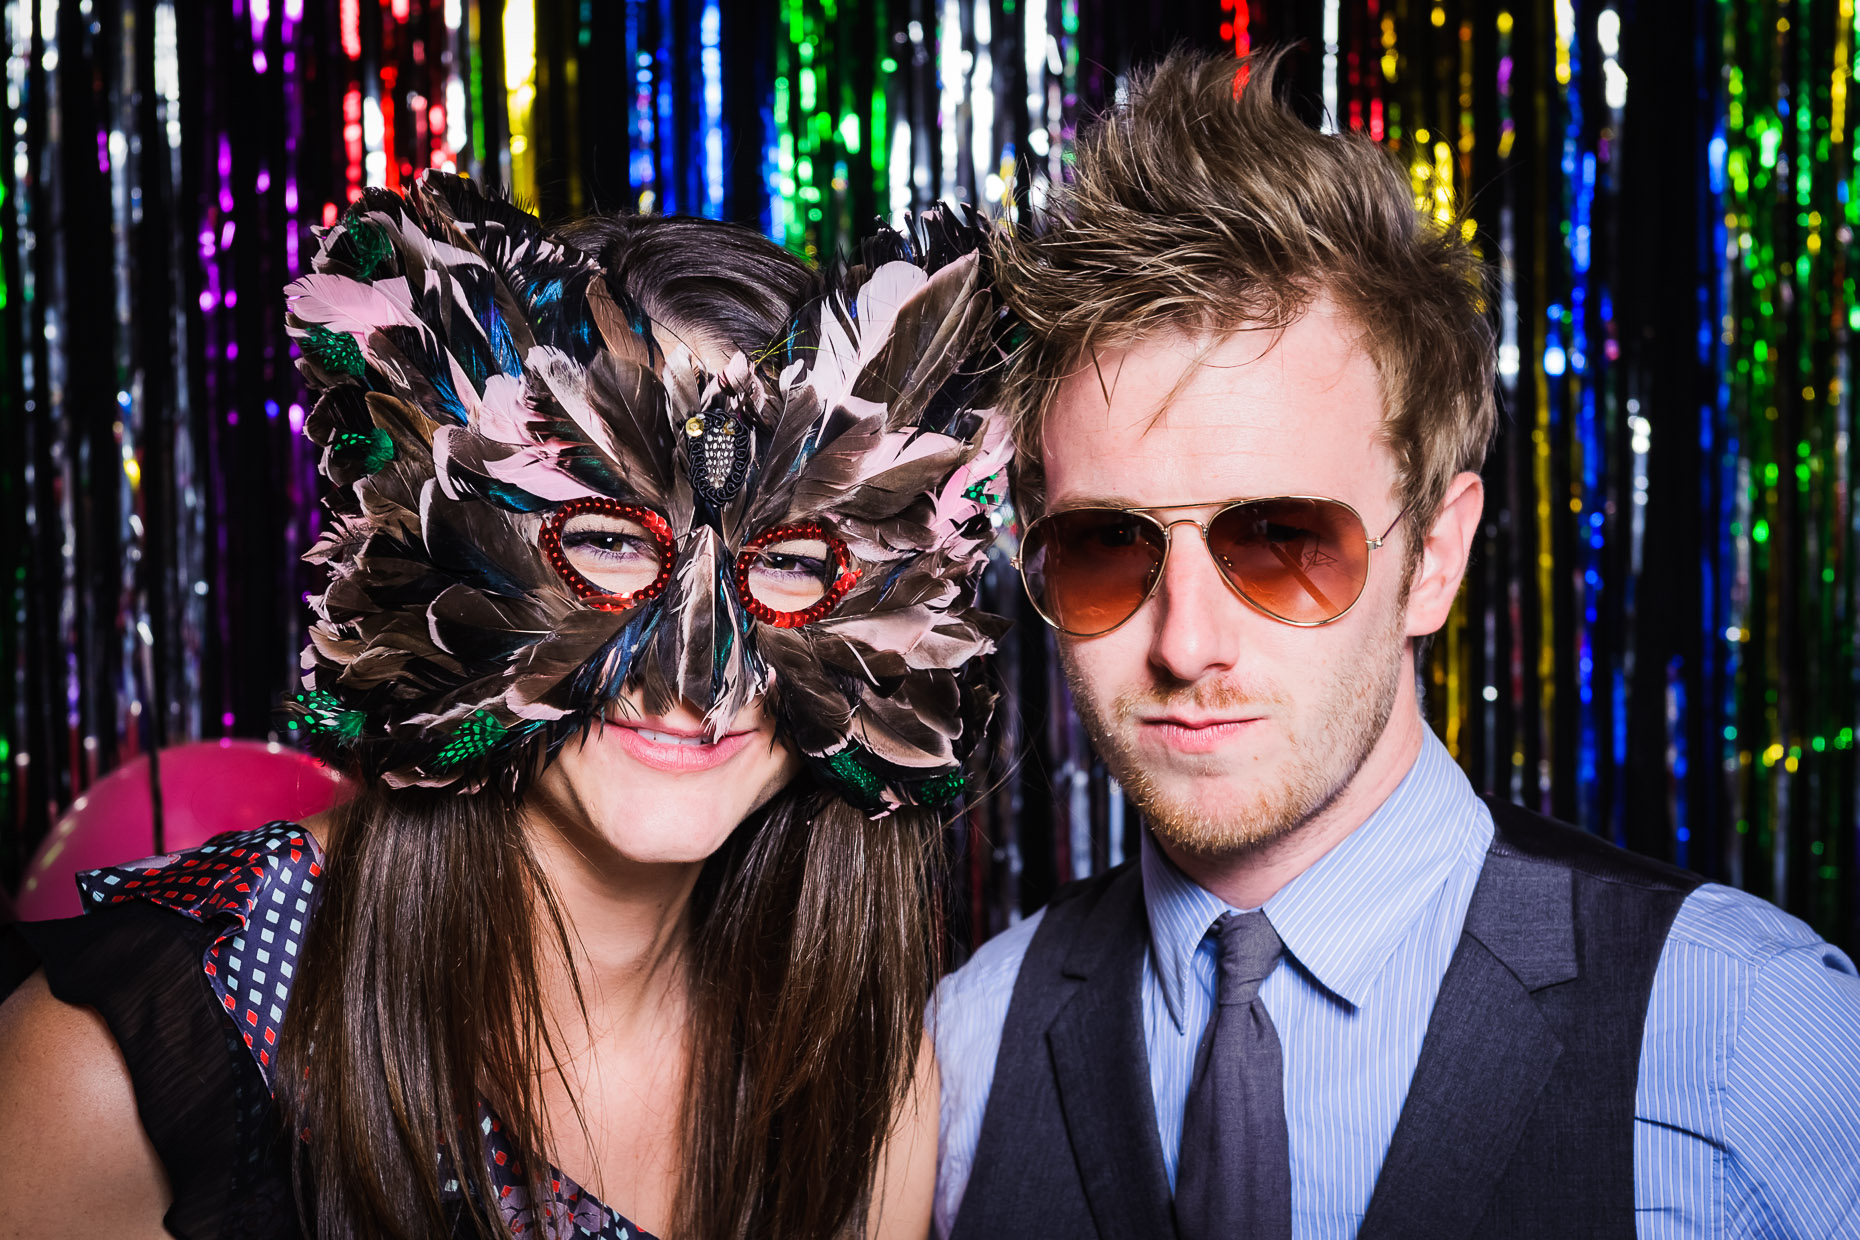 Photo-booth-Austin-Event-Commercial-Photographer-Mask.jpg